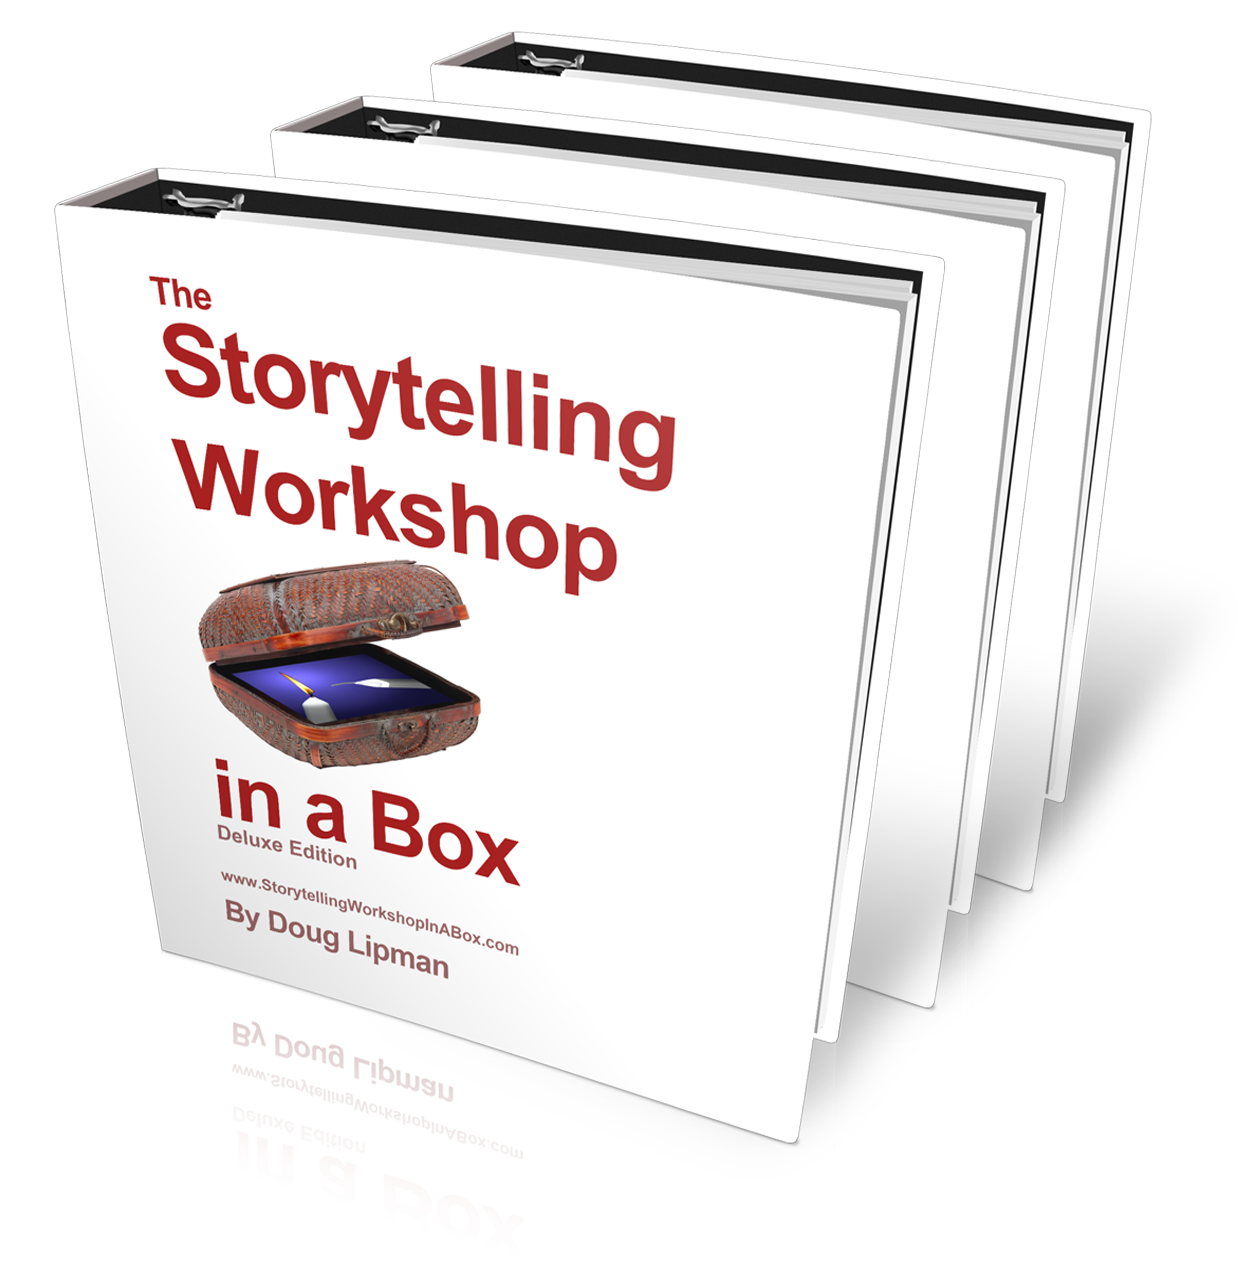 storytelling-workshop-in-a-box.jpg